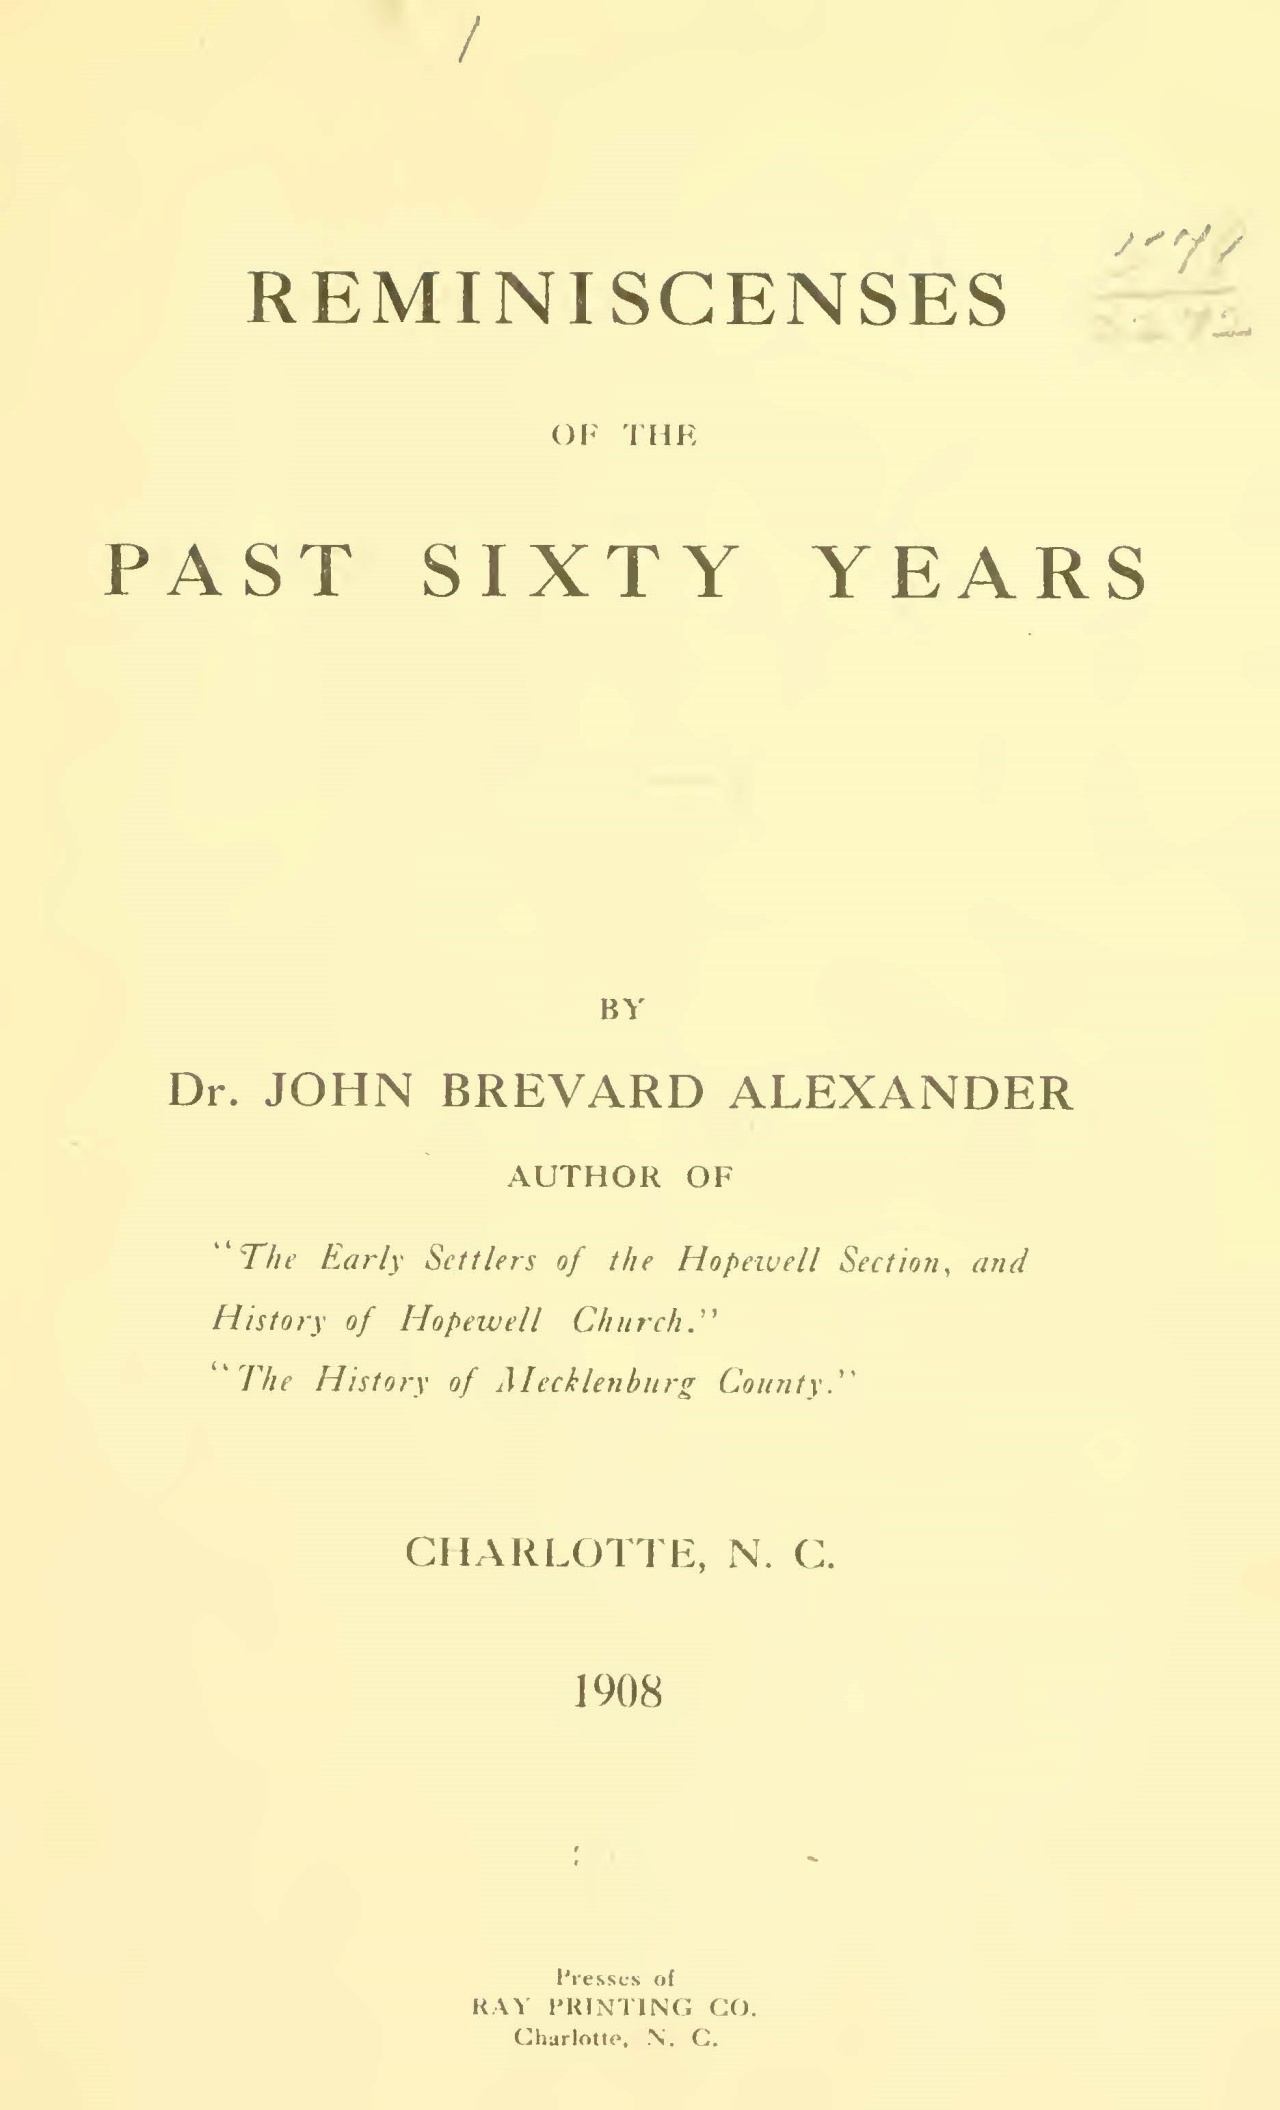 Alexander, Sr., John Brevard, Reminiscences of the Past Sixty Years Title Page.jpg